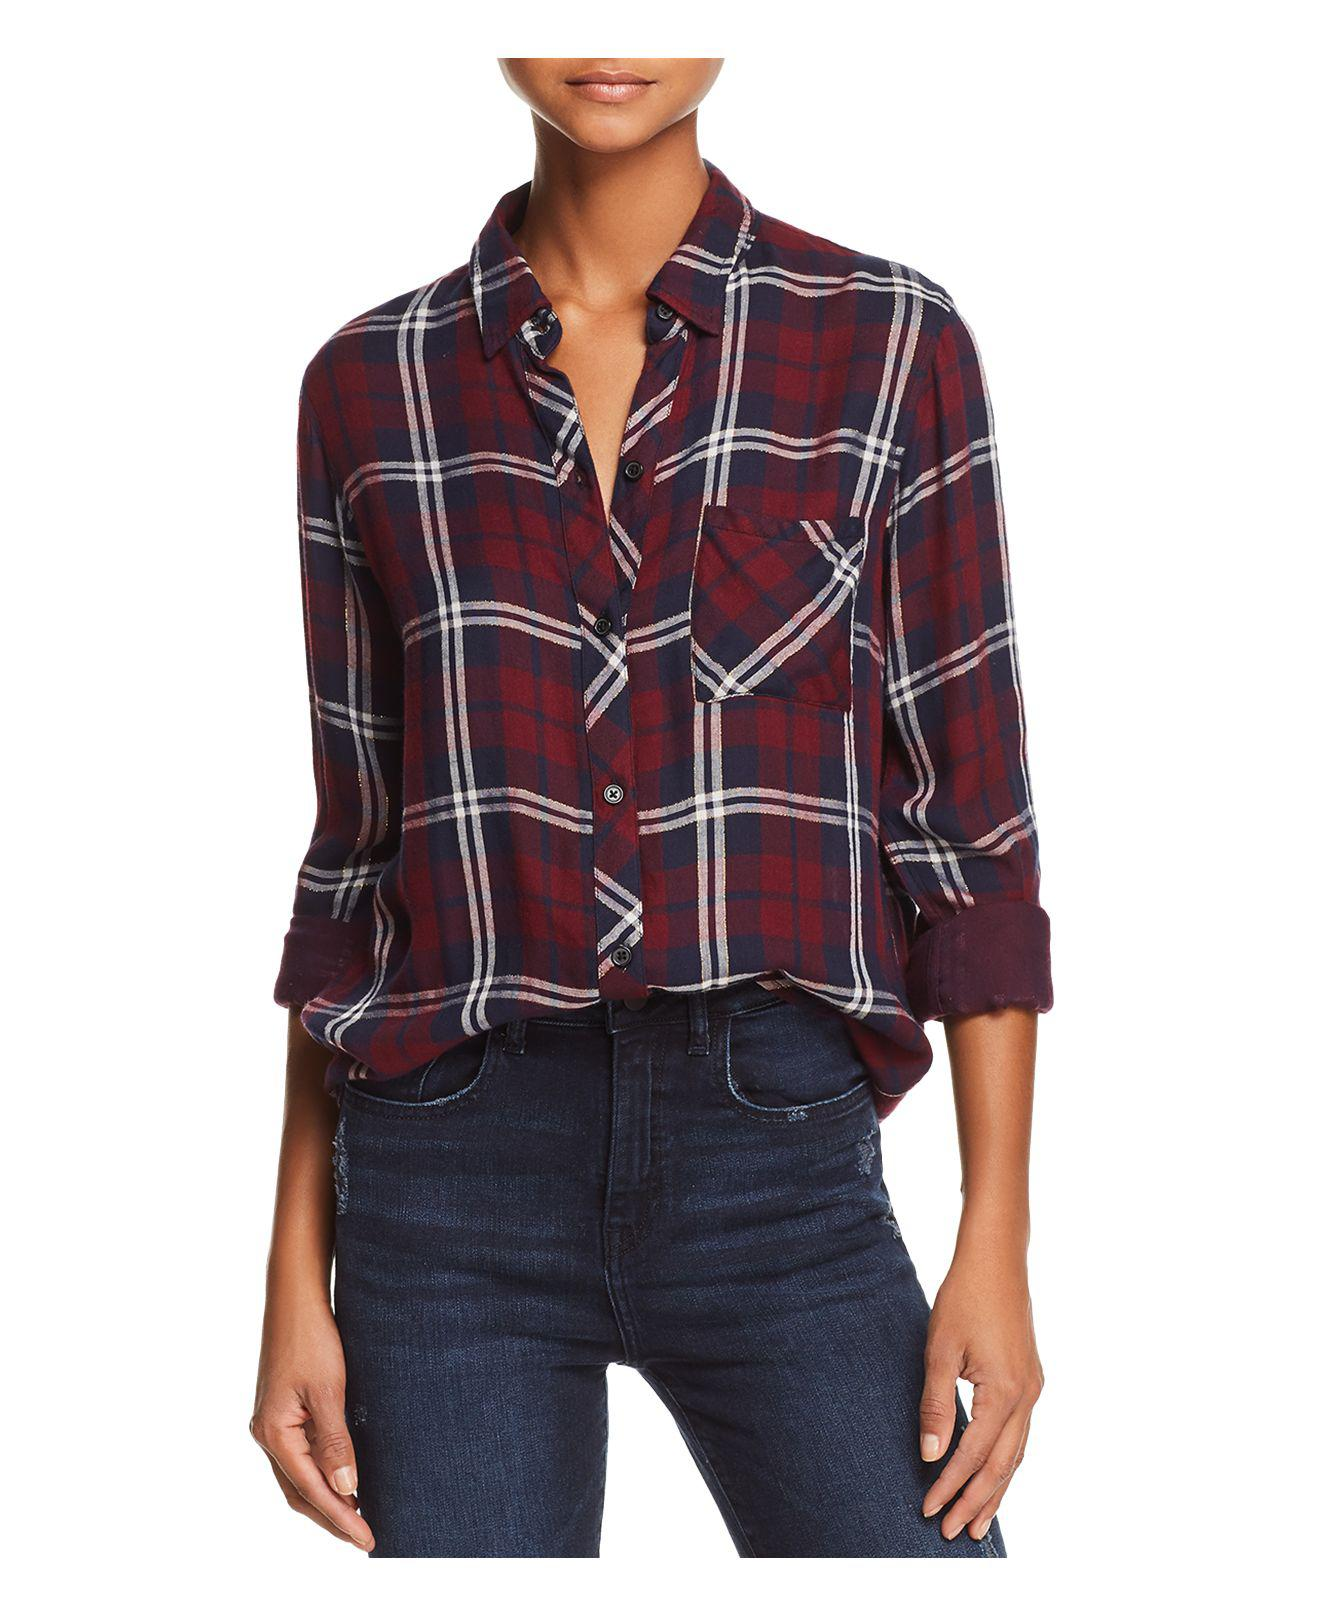 Lyst - Rails Gemini Metallic Plaid Shirt in Red